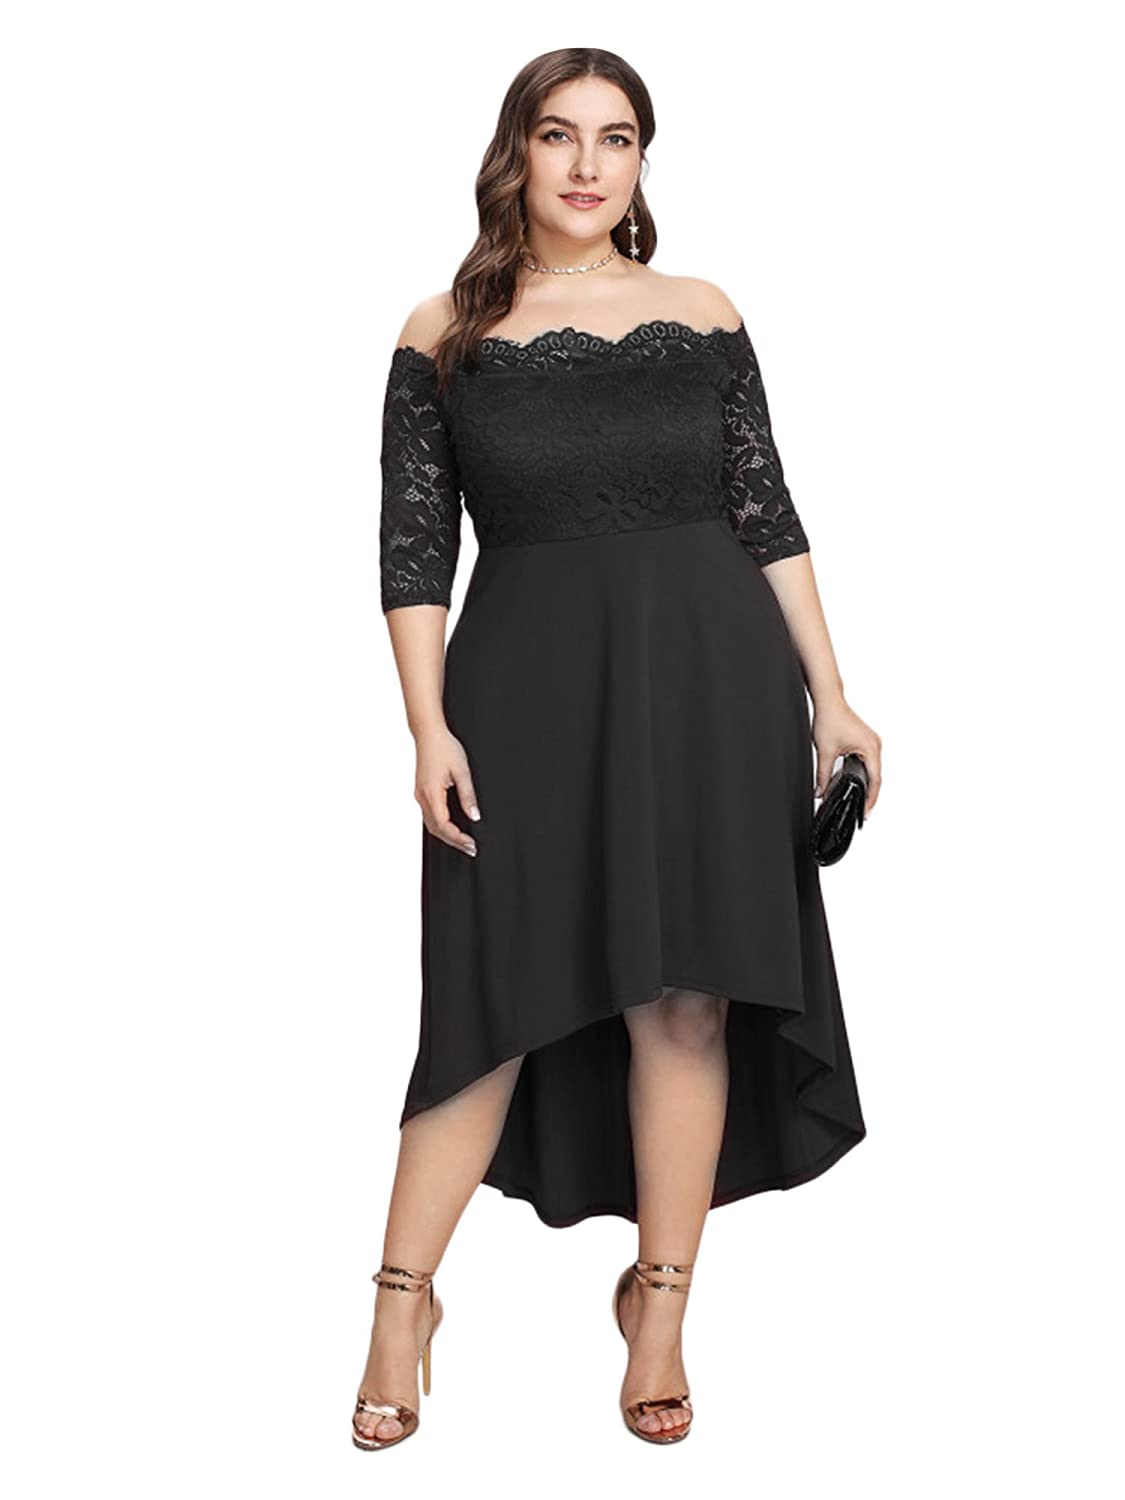 3bb3c19fc0c GMHO Women s Plus Size Floral Lace Off-The-Shoulder Cocktail Formal Swing  Dress at Amazon Women s Clothing store